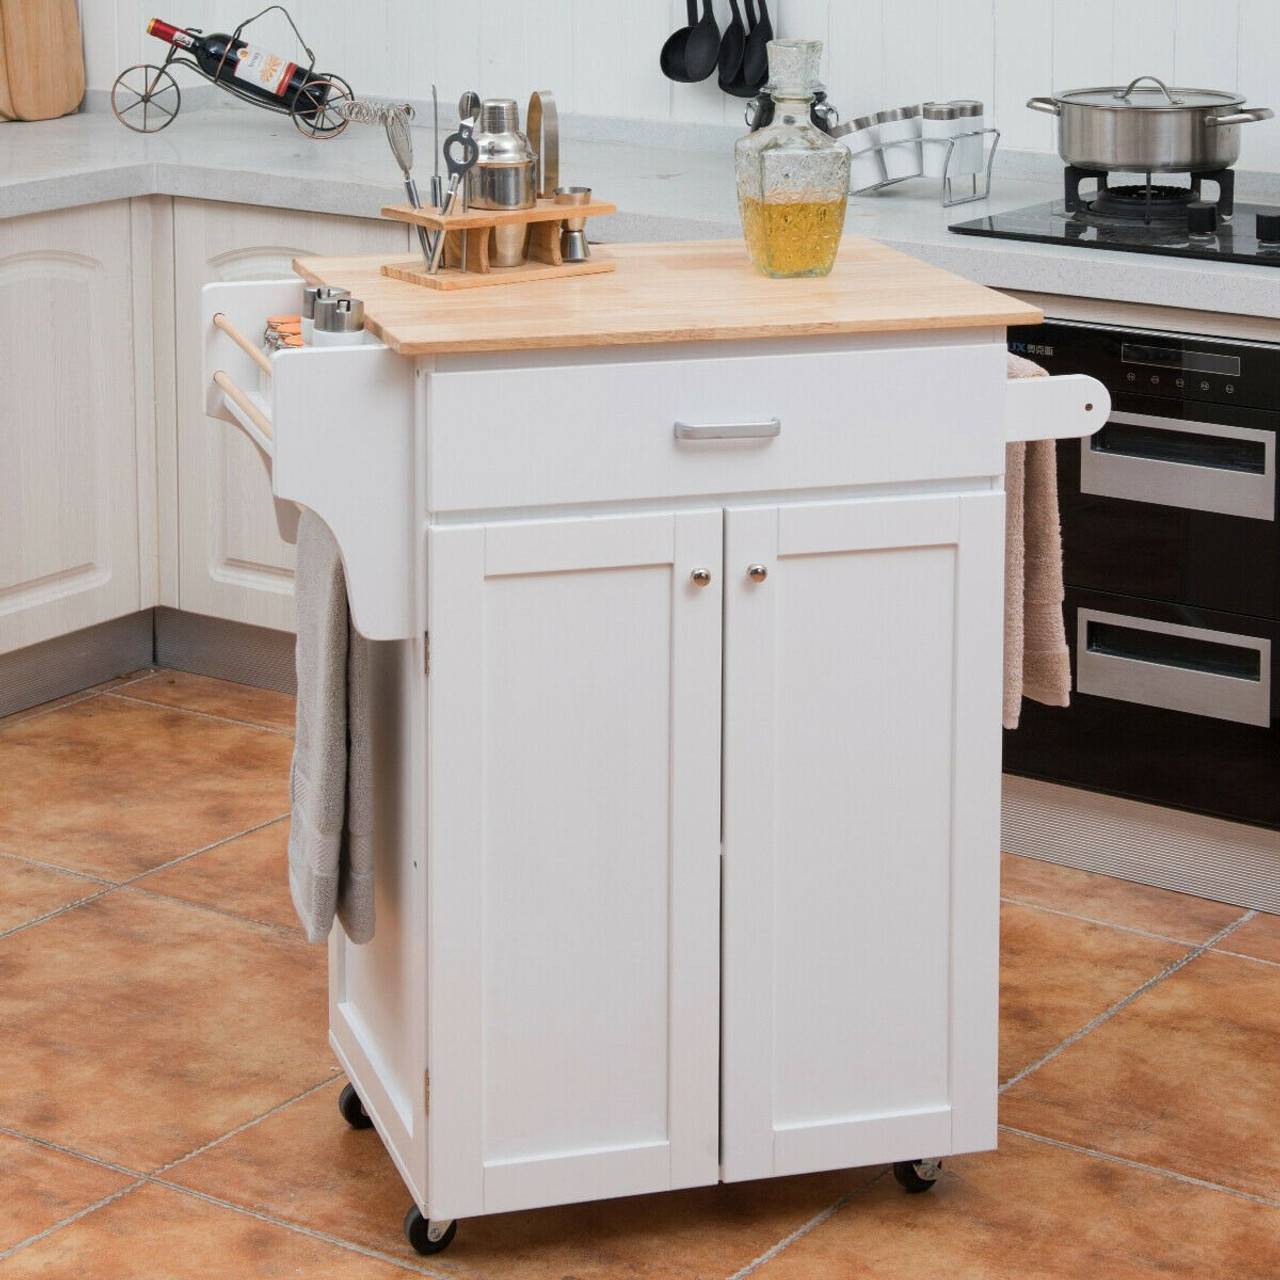 Image of: Rolling Kitchen Island Cart Storage Cabinet With Spice Rack White Kc50278wh By Cw